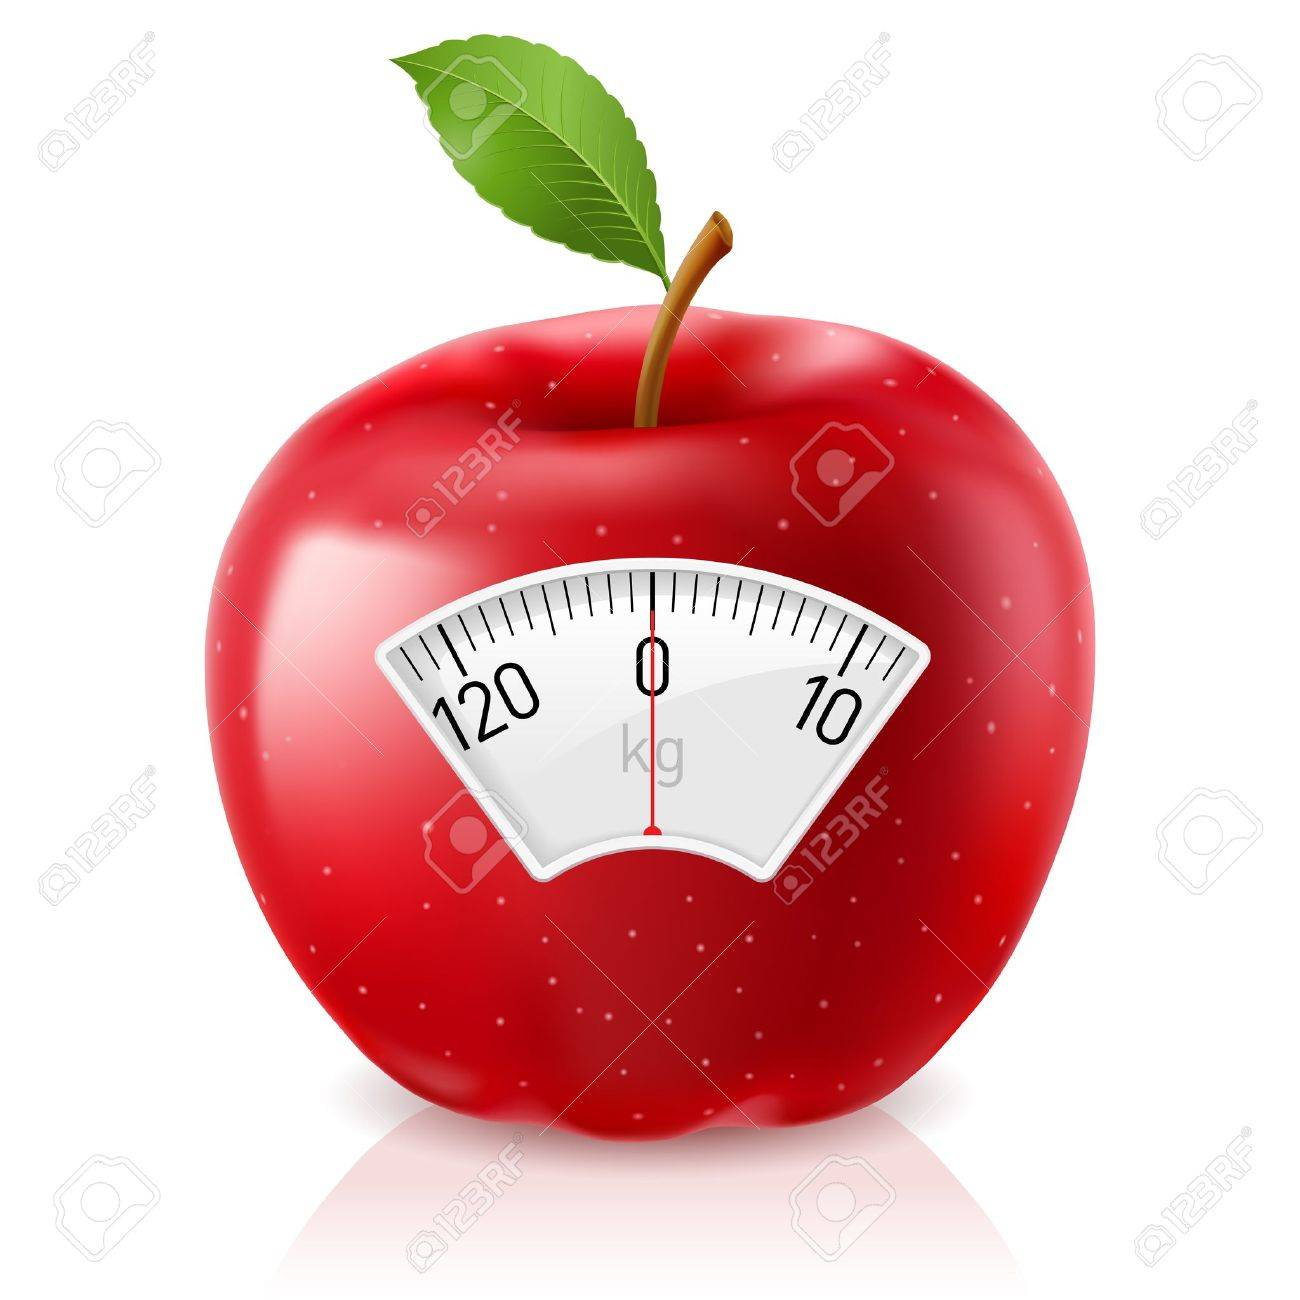 Red Apple With Scale for a Weighing Machine Stock Vector - 15237239